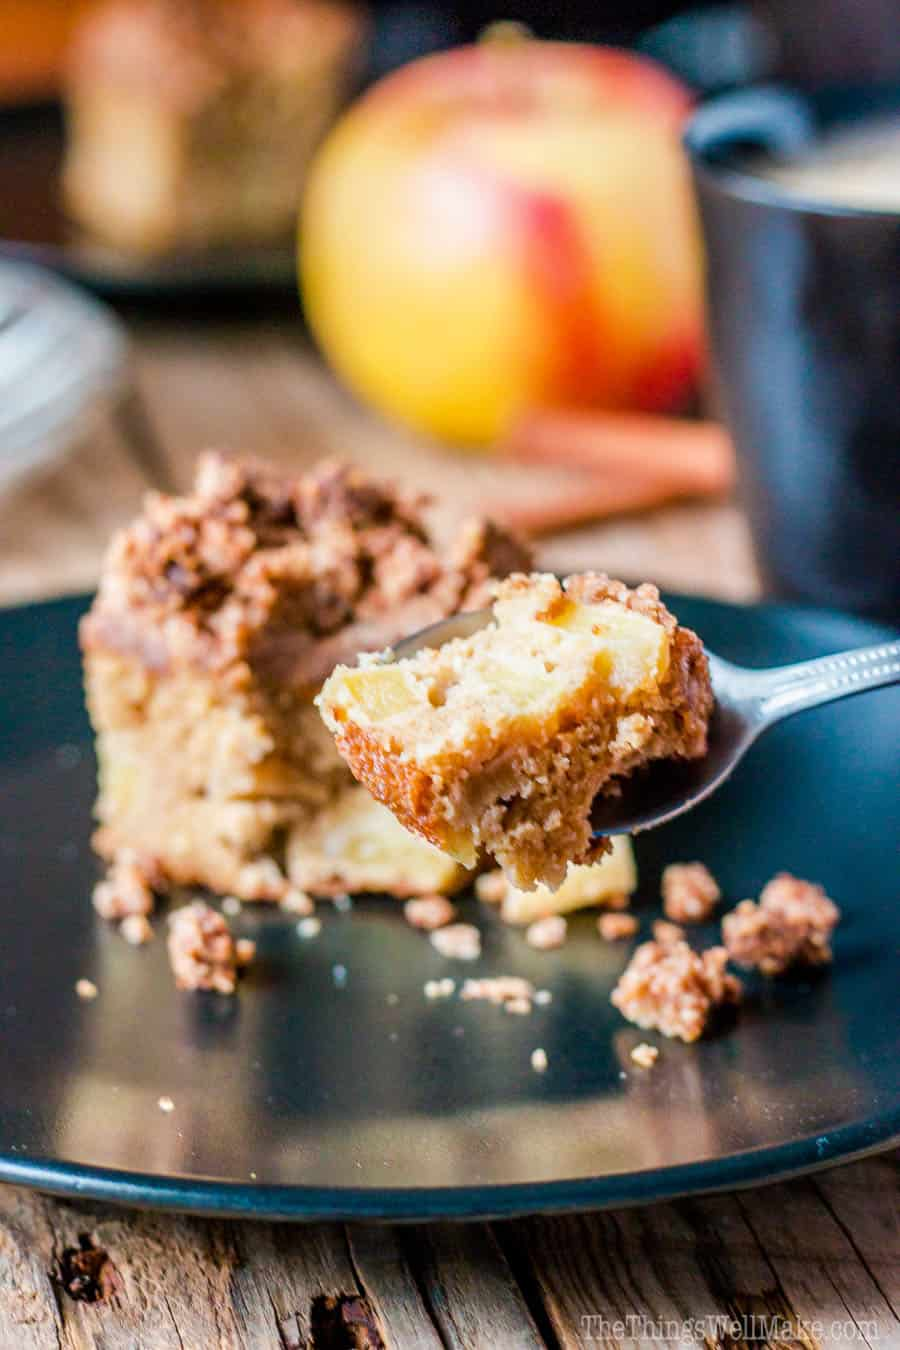 With fall apples giving this coffee cake its moist texture, which contrasts with its crispy crumb topping, this paleo apple crumb cake is definitely one of my favorite paleo treats.